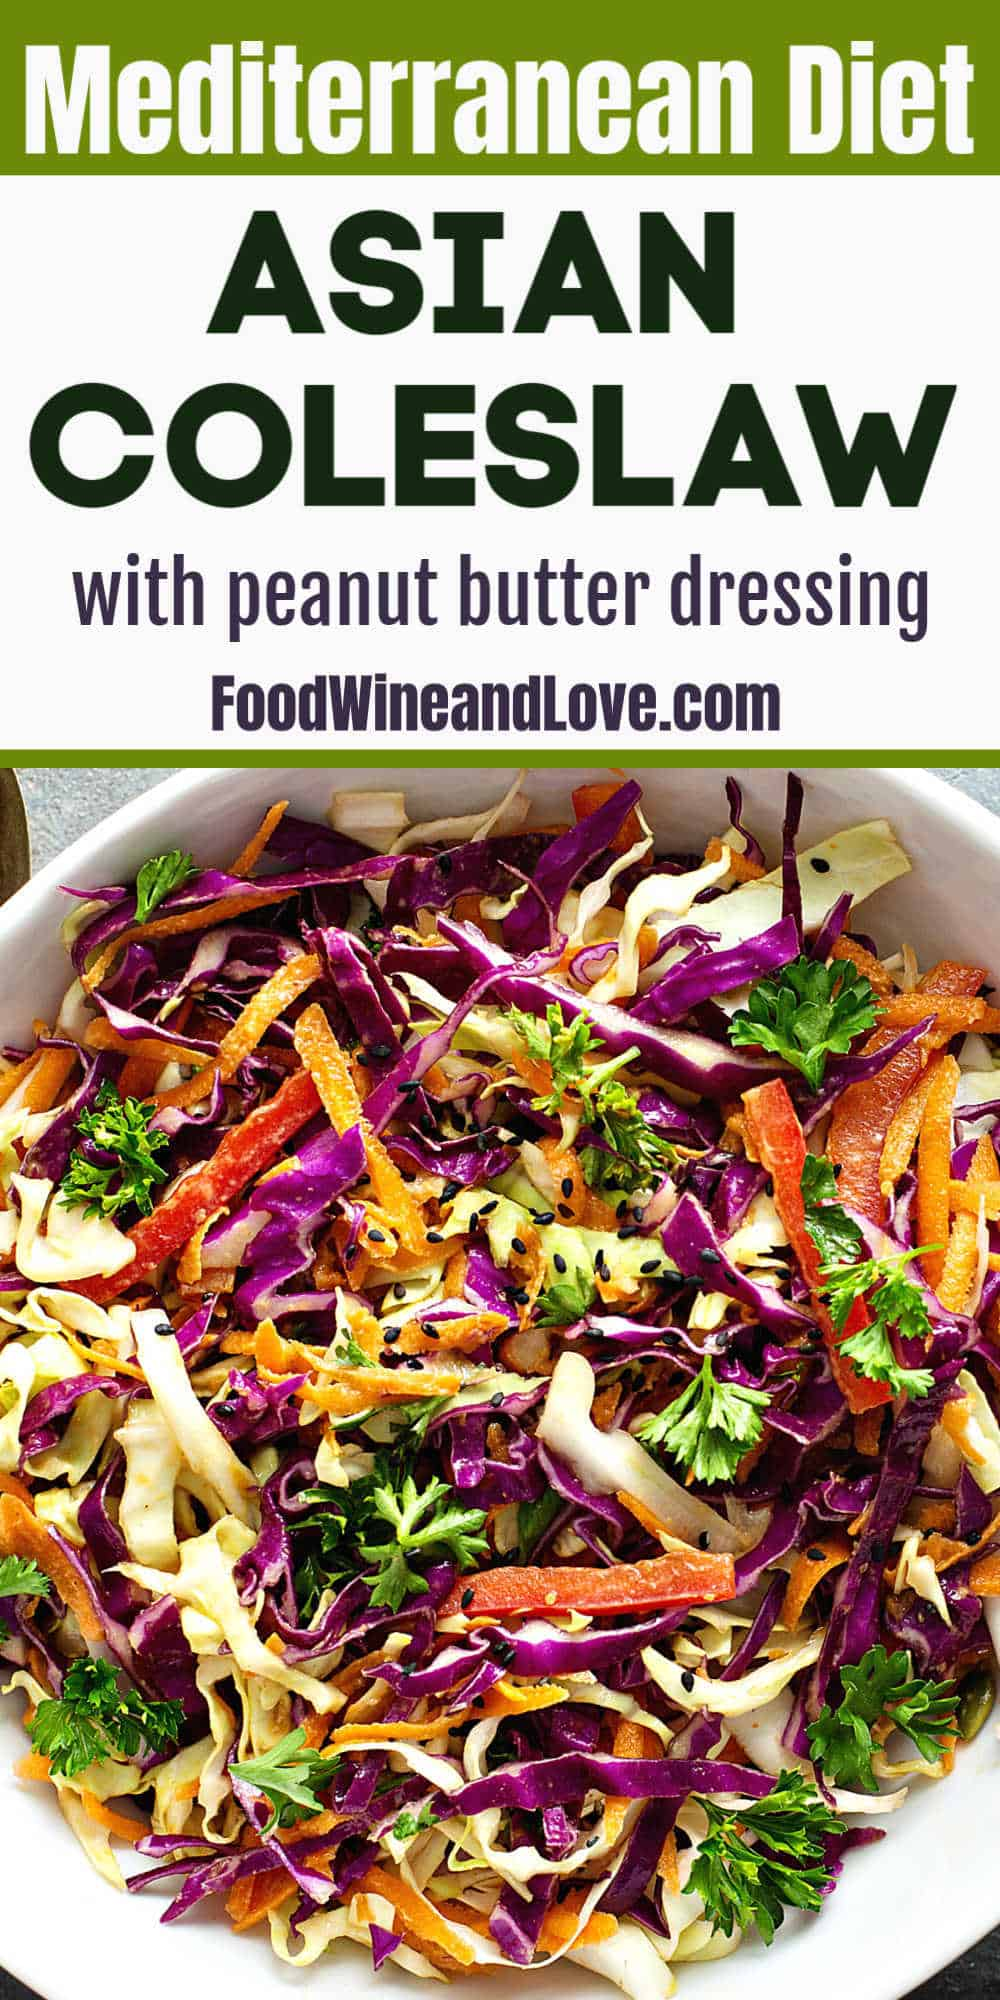 Asian Coleslaw With Peanut Butter Dressing